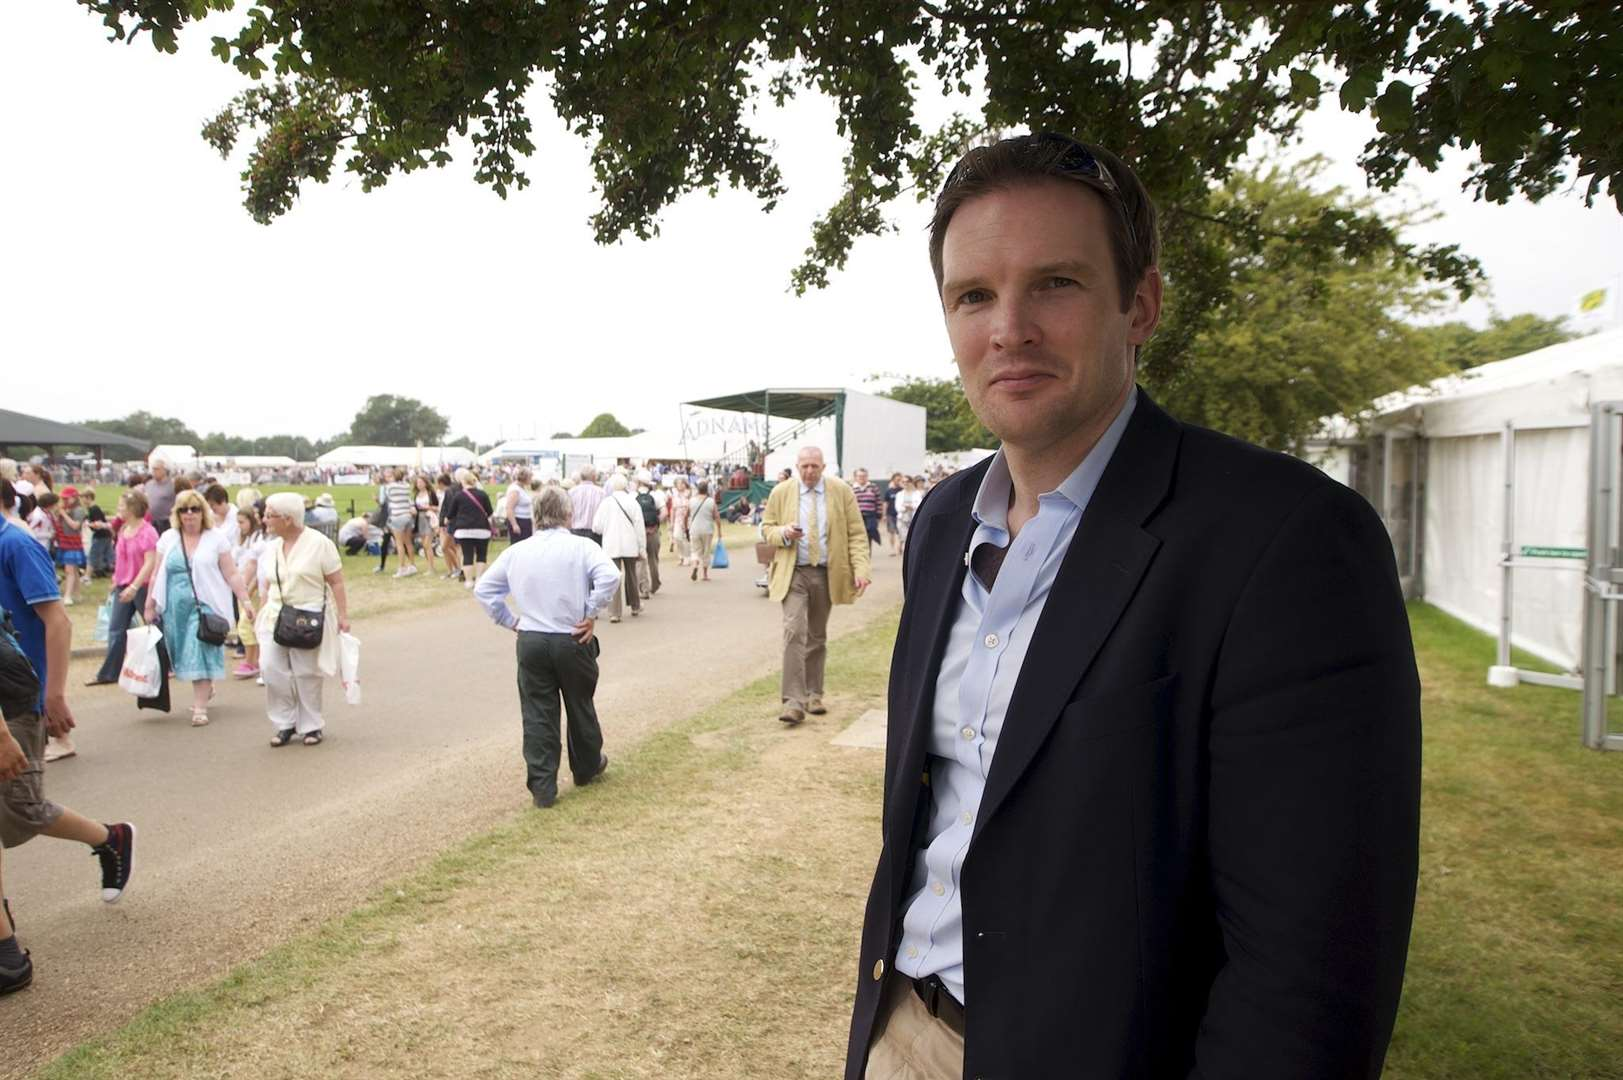 Dr Dan Poulter MP. Photo by Mark Bullimore